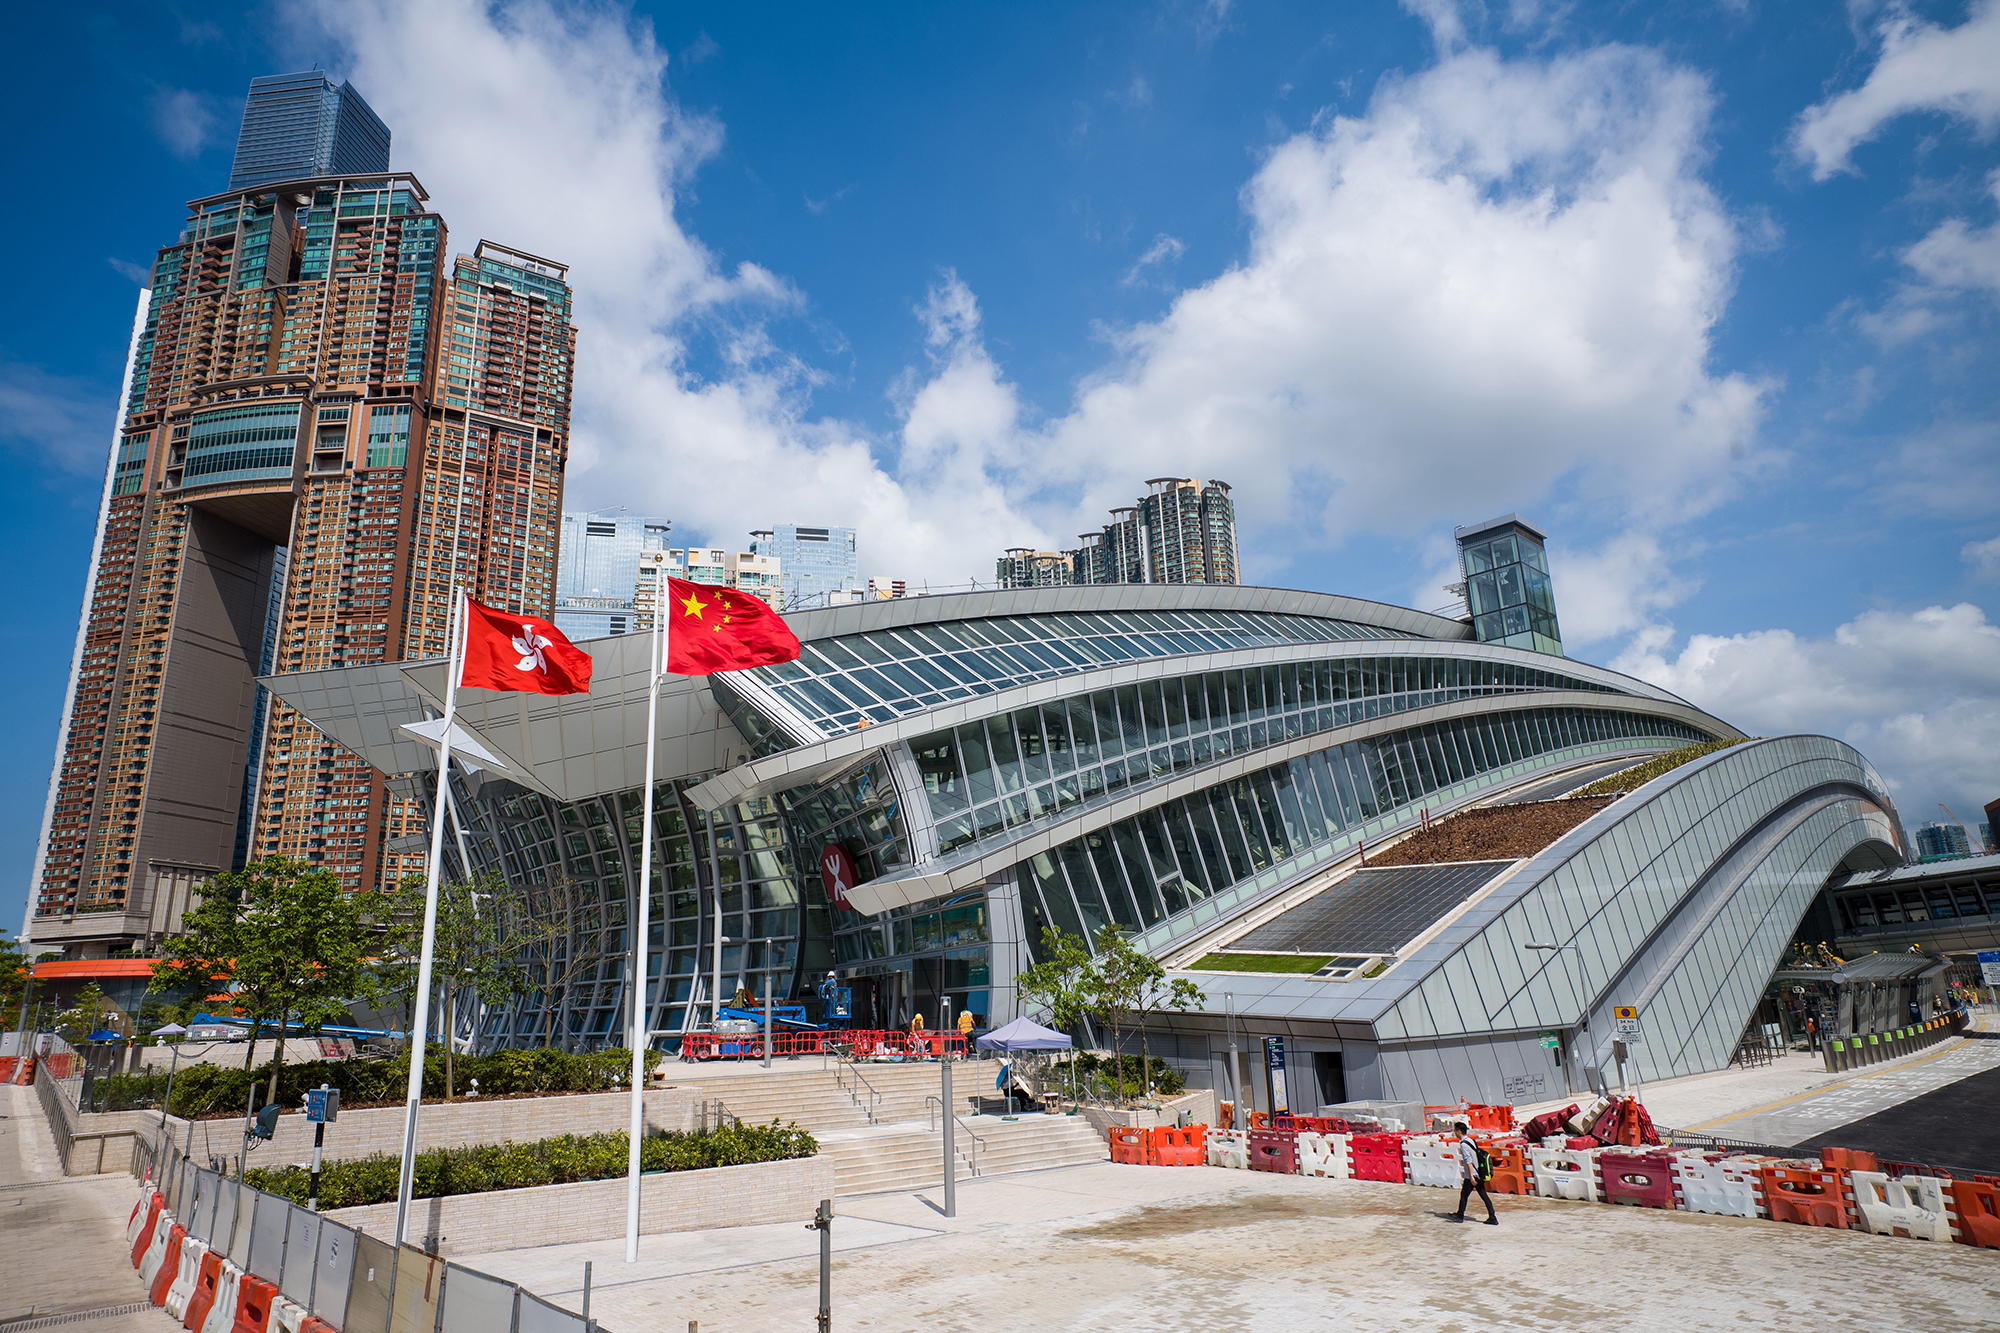 The West Kowloon train station in Hong Kong on September 10, 2018.